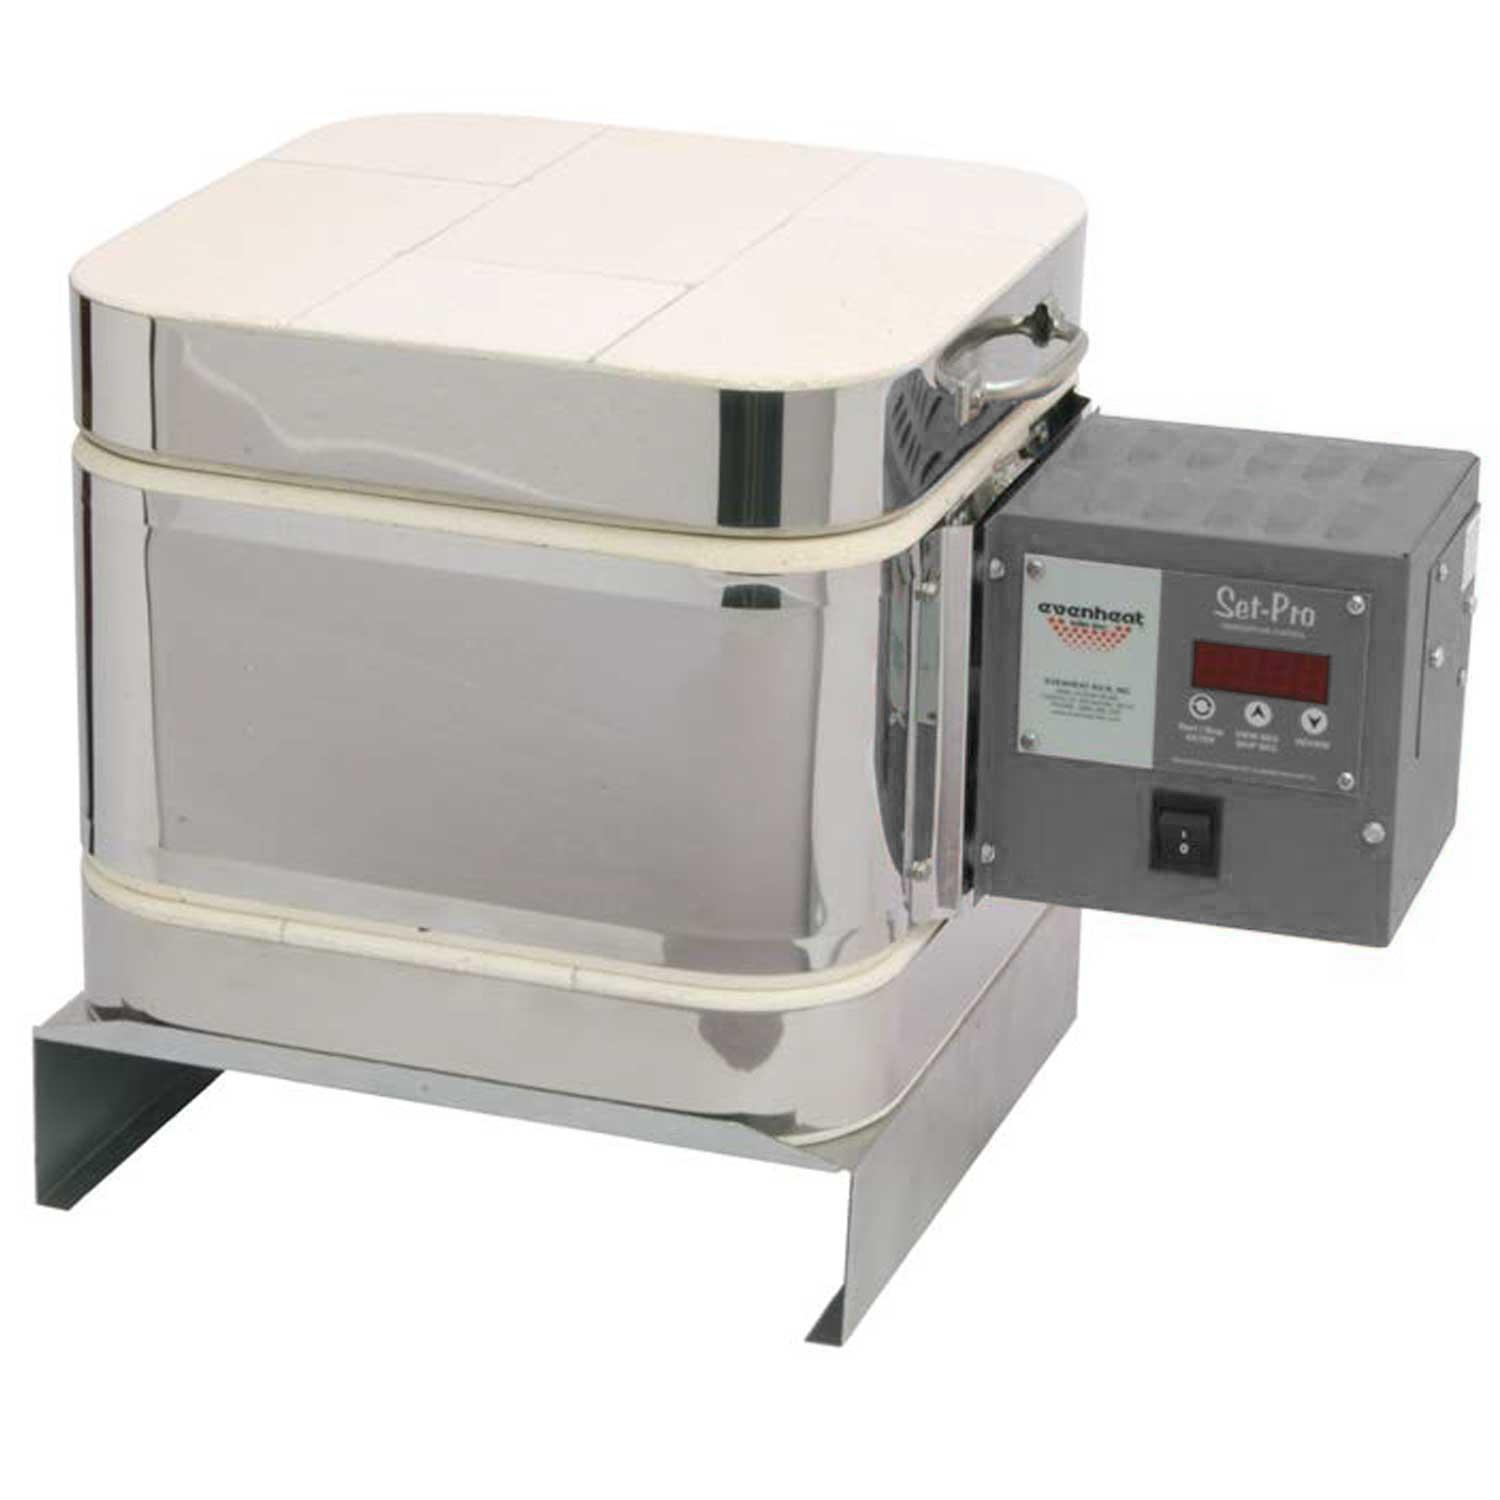 V8 Multi-Purpose And Vitrigraph Kiln With Set-Pro